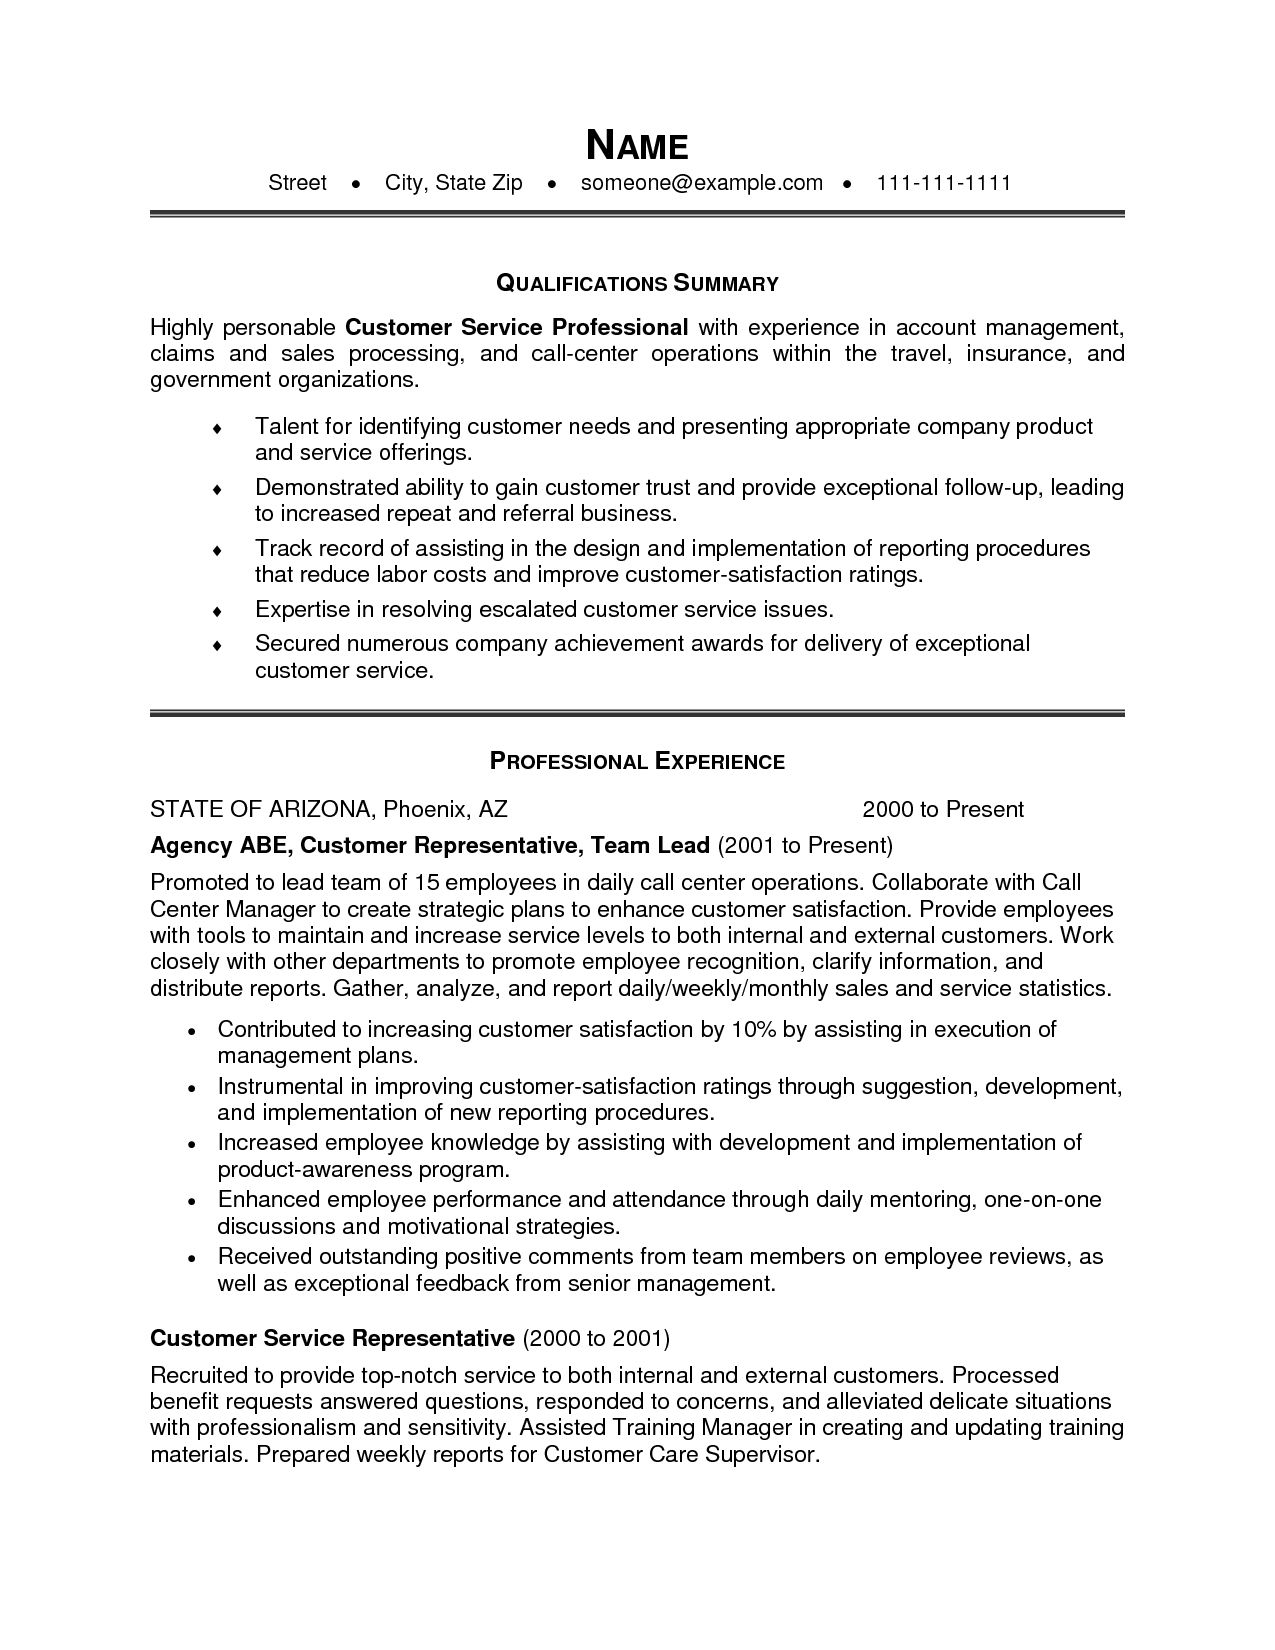 customer service resume objective or summary definition job cute sorority templates auto Resume Customer Service Resume Objective